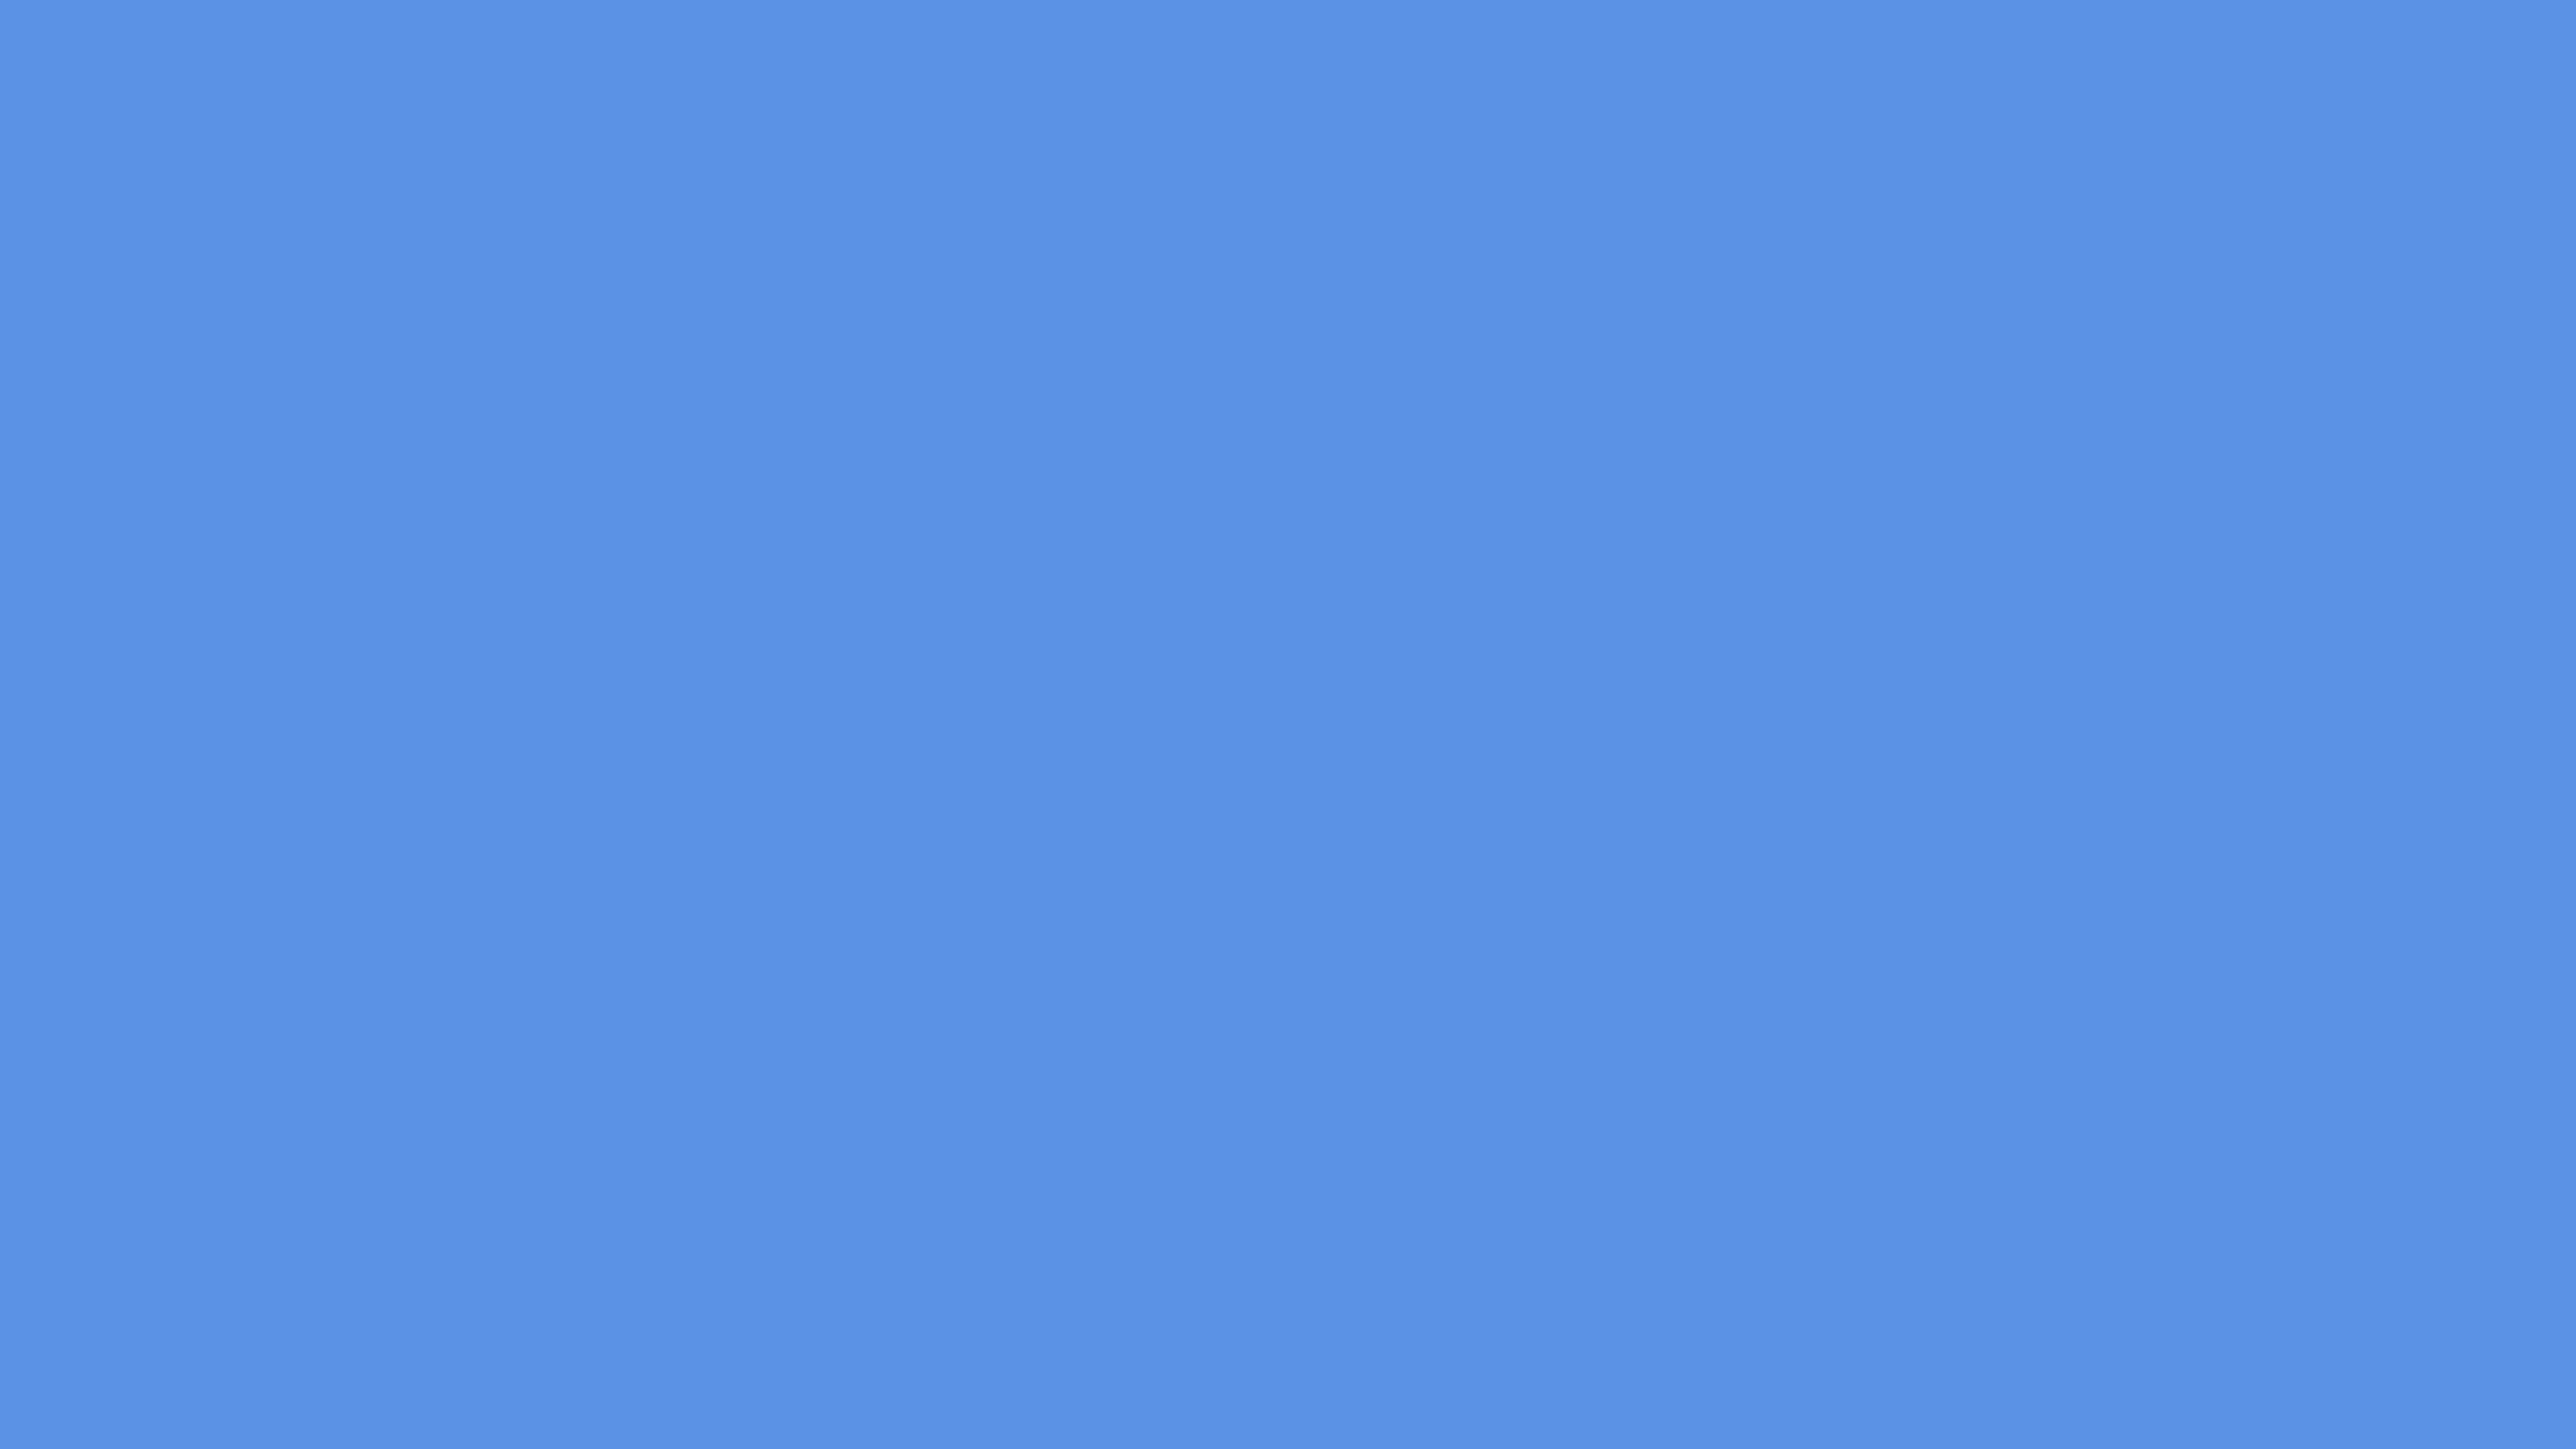 5120x2880 United Nations Blue Solid Color Background